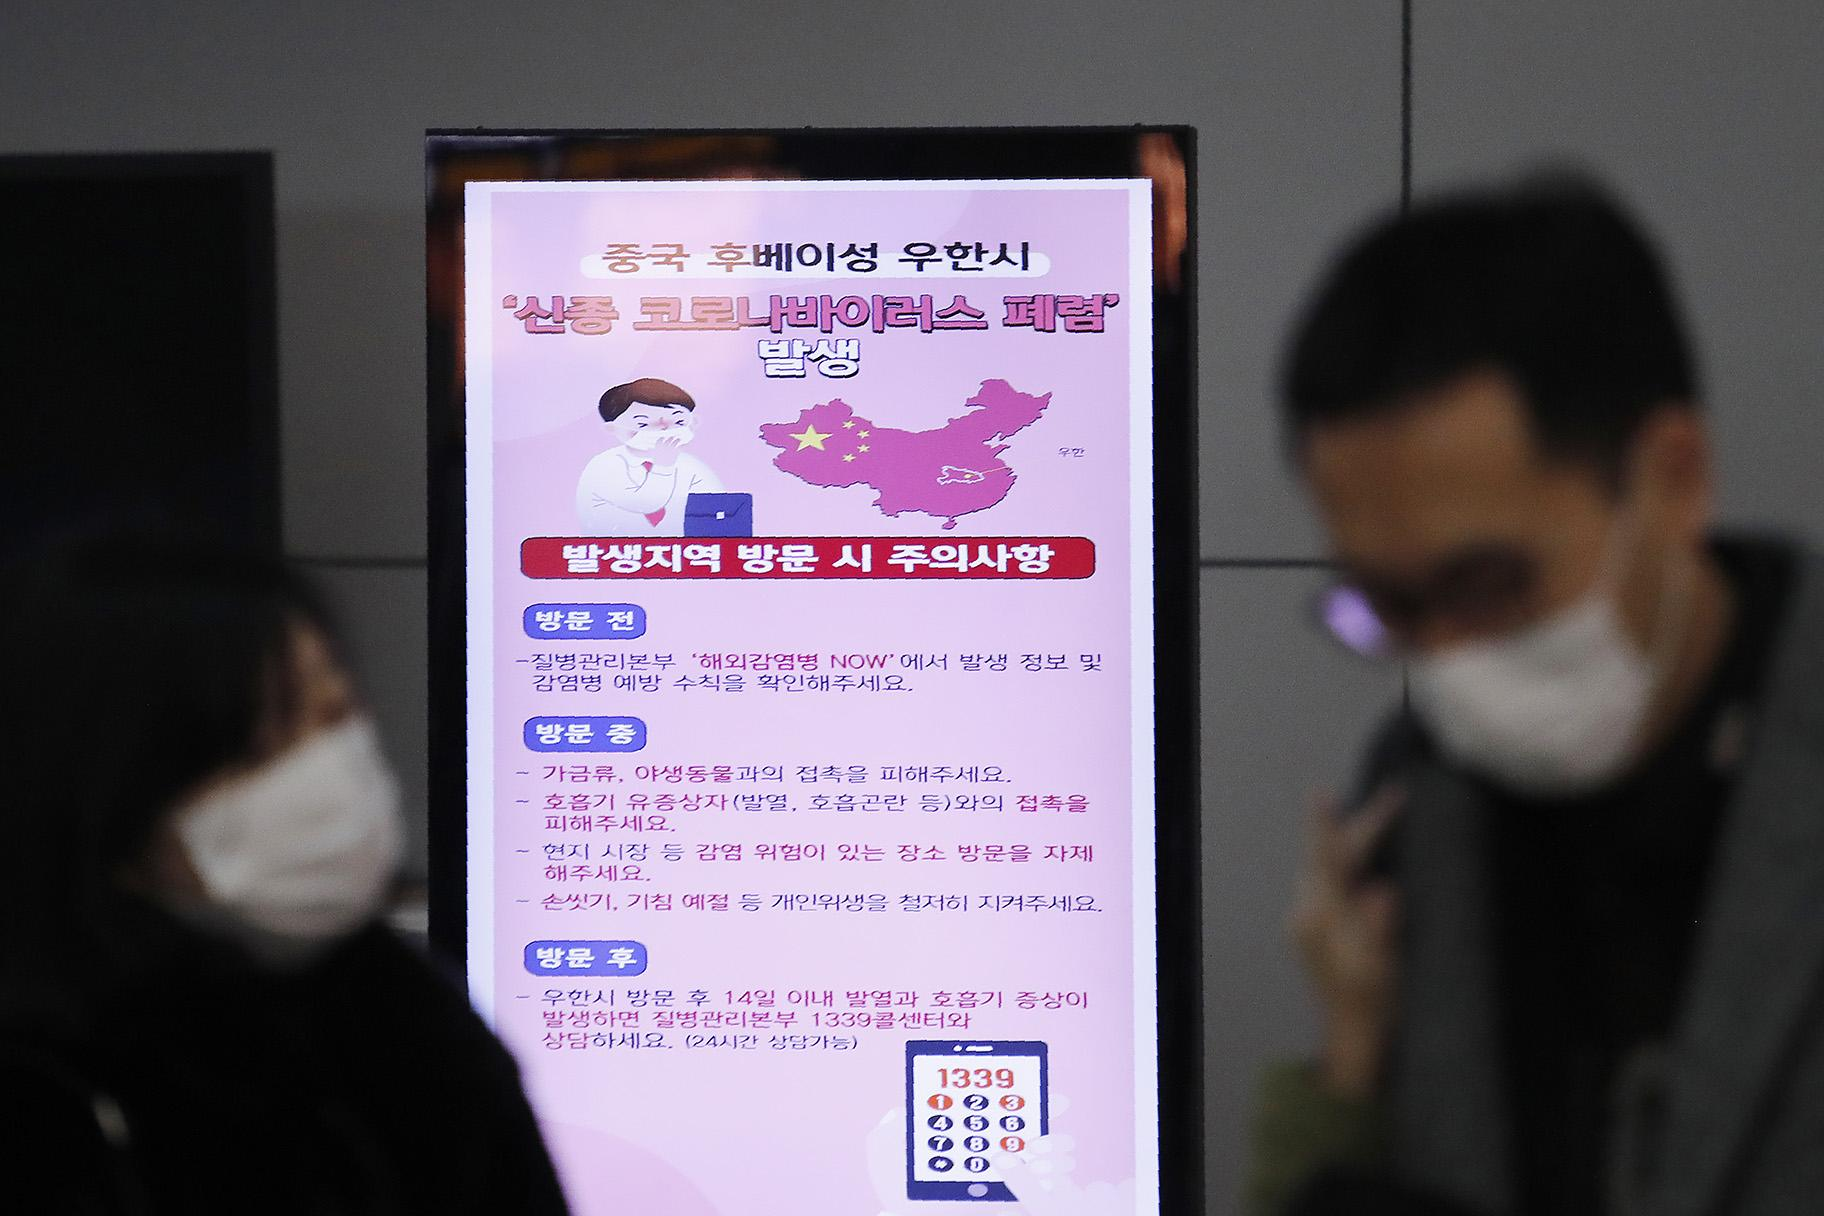 In this Jan. 27, 2020, file photo, a poster warning about coronavirus is seen as passengers wear masks in a departure lobby at Incheon International Airport in Incheon, South Korea. (AP Photo / Ahn Young-joon, File)